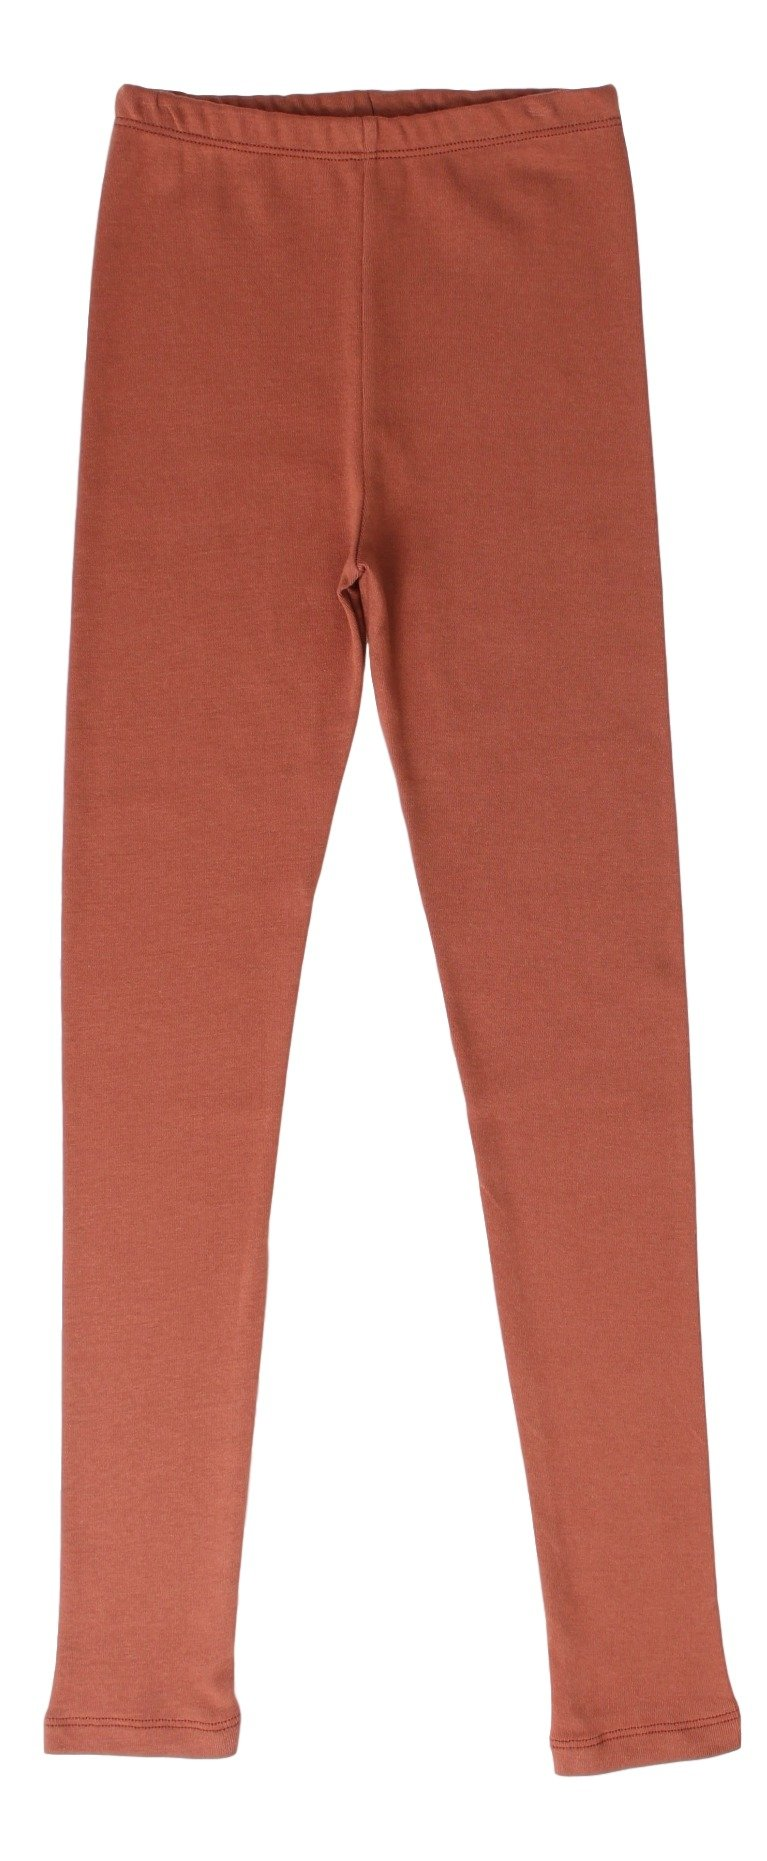 CAOMP Girls'%100 Organic Cotton Leggings for School or Play (13-14, Brown)